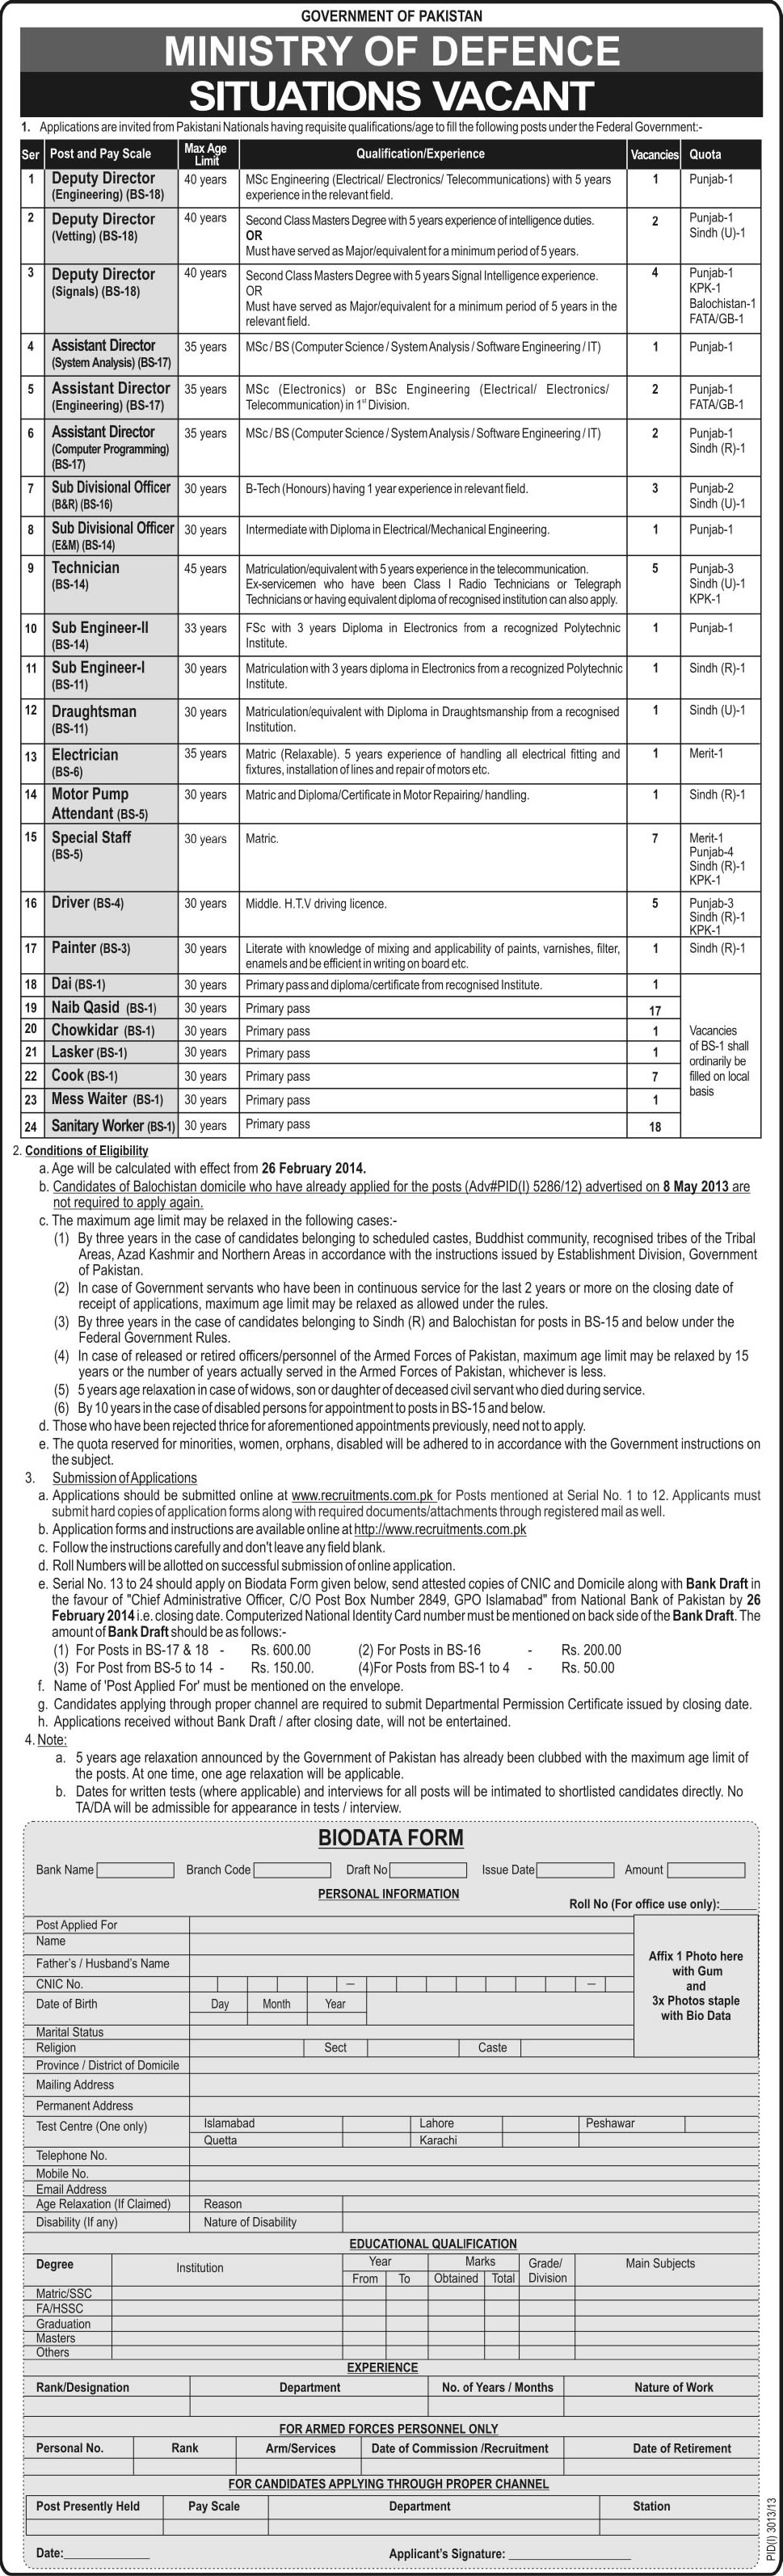 Ministry of Defence Jobs 2014 Apply Online Application Form